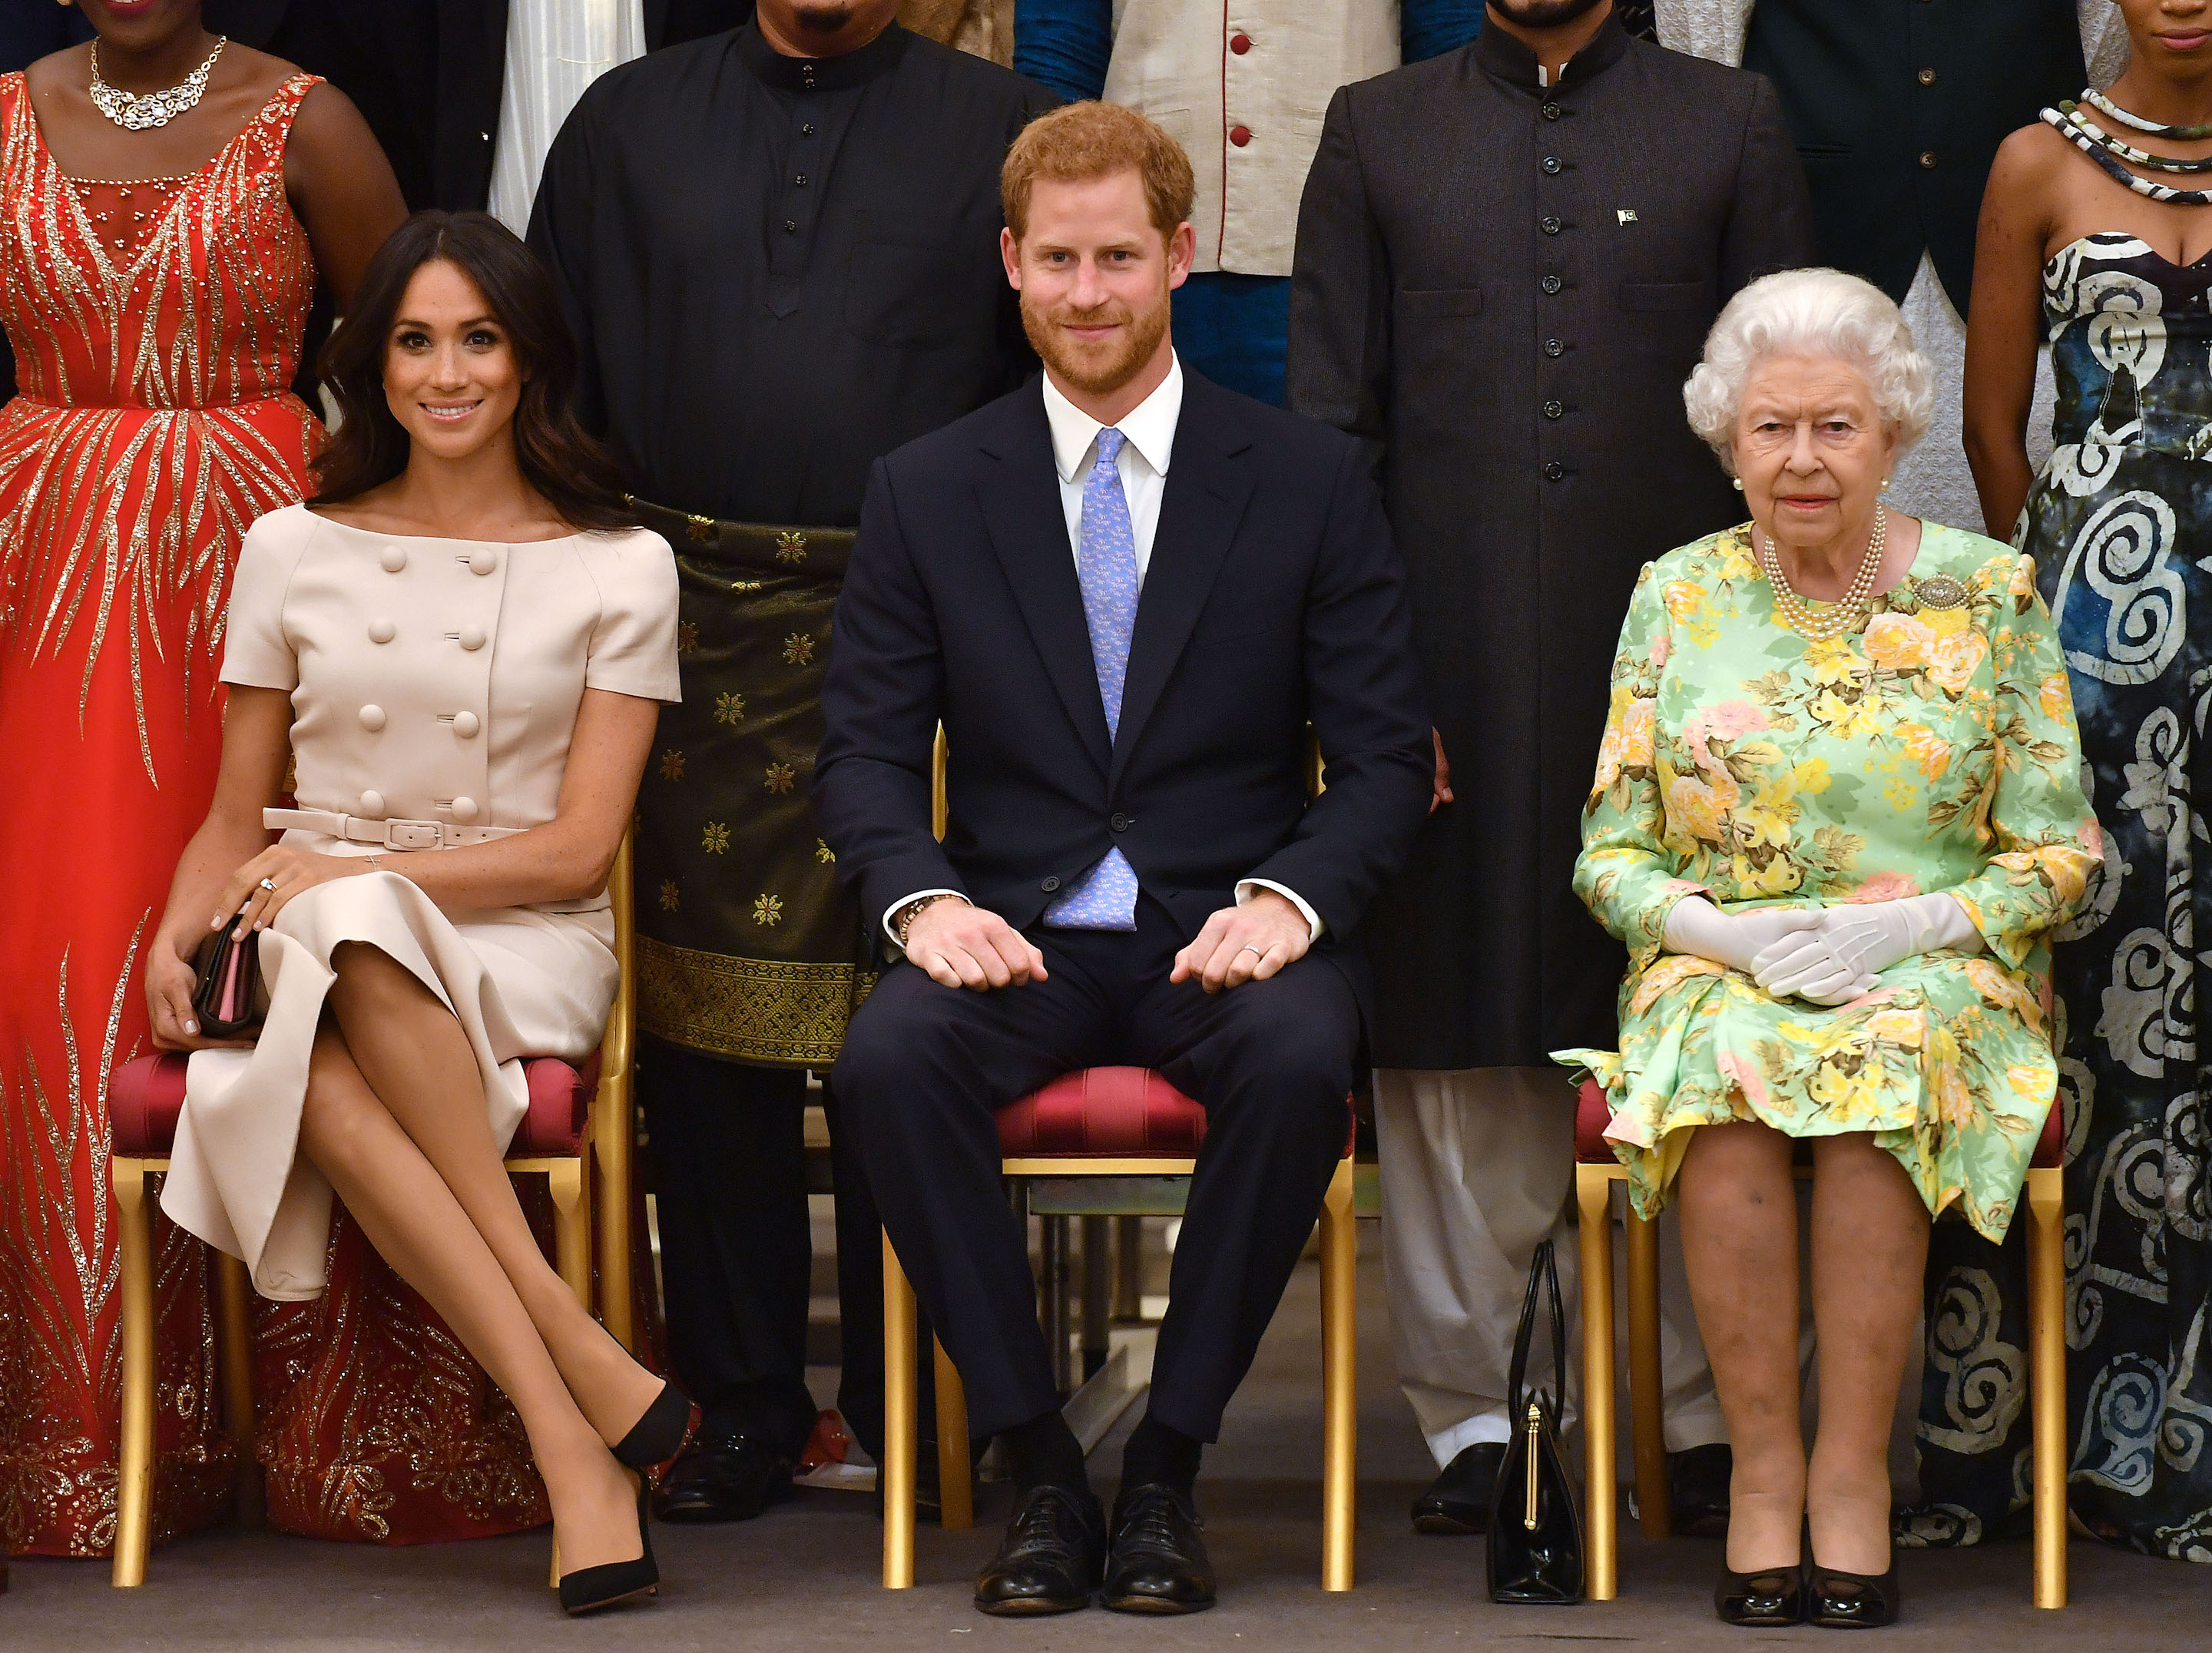 Britain's Duchess of Sussex Megan Markle, Prince Harry, Duke of Sussex, and Queen Elizabeth II during the Queen's Young Leaders Awards Ceremony on June 26, 2018, at Buckingham Palace.